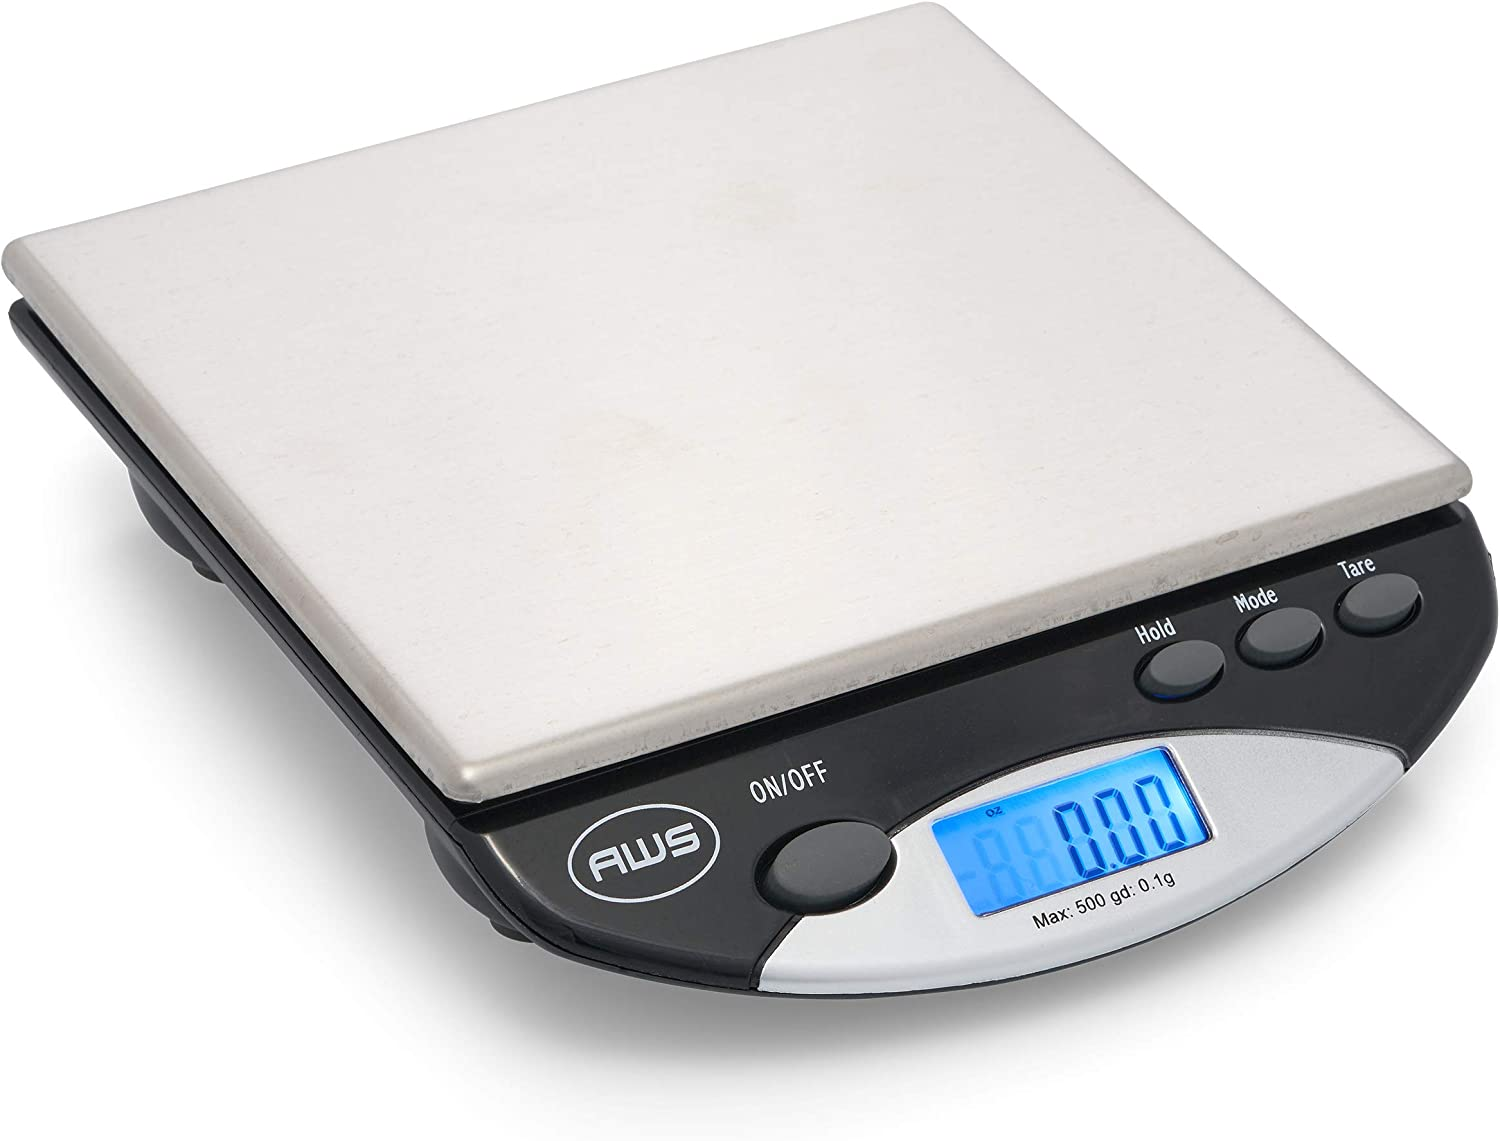 American Weigh Scales Max 79% Cheap super special price OFF AWS-500I Compact Bench 500G Scale Black